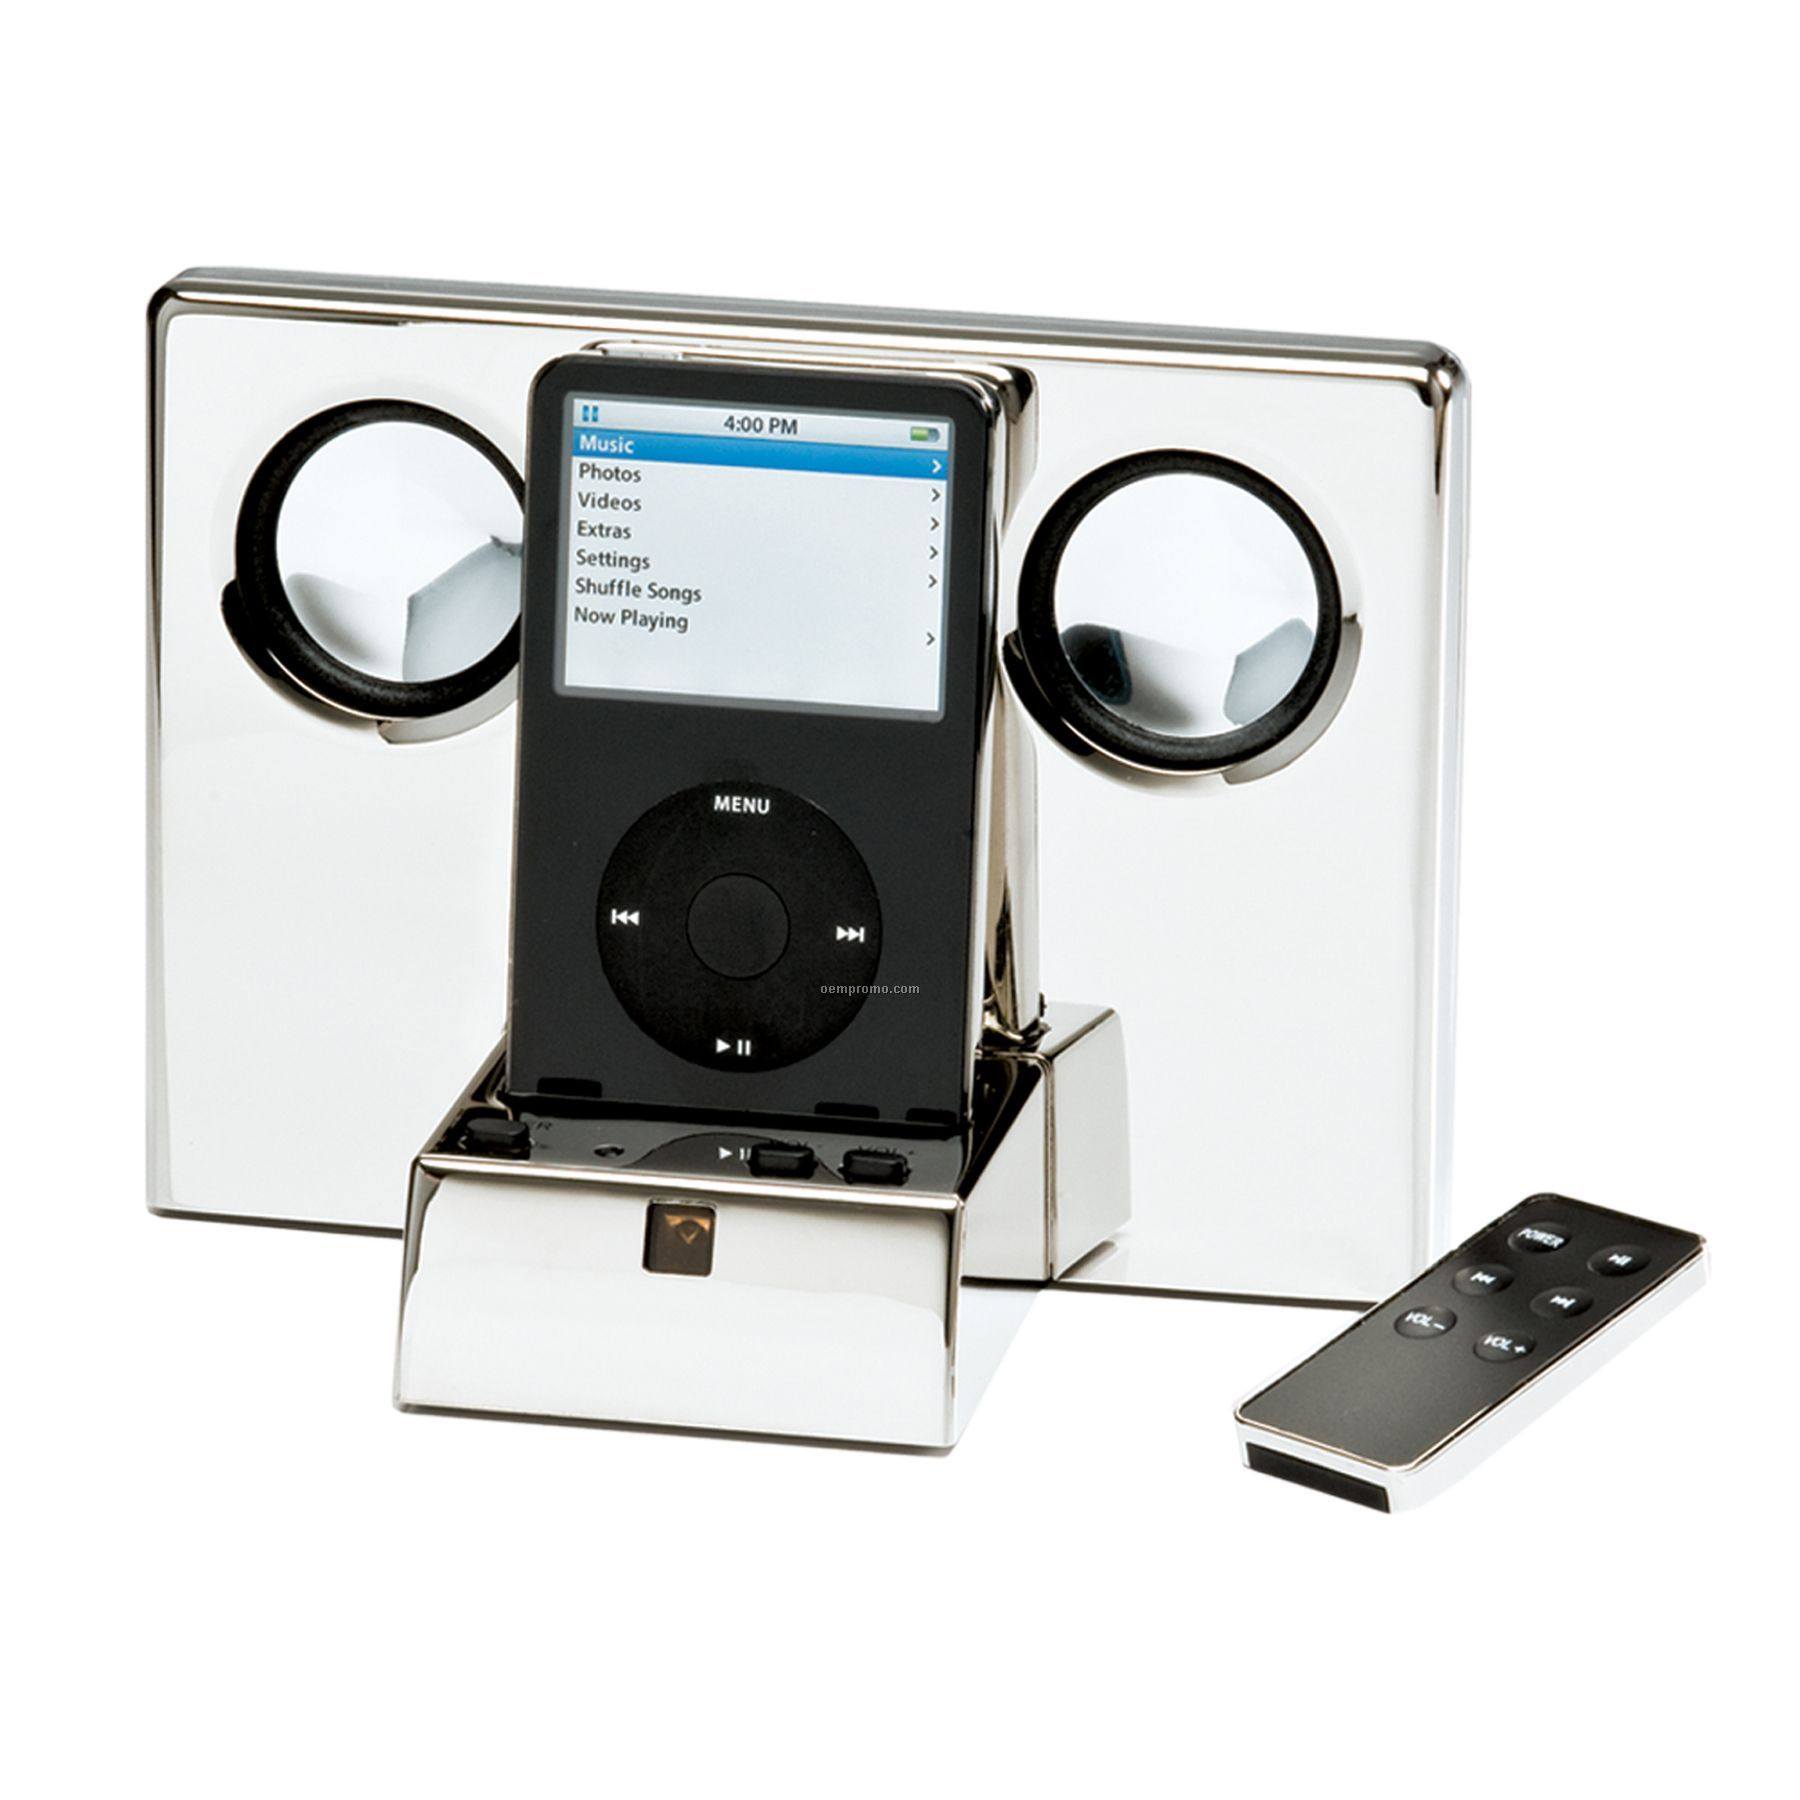 Nickel Plated Ipod Music Player